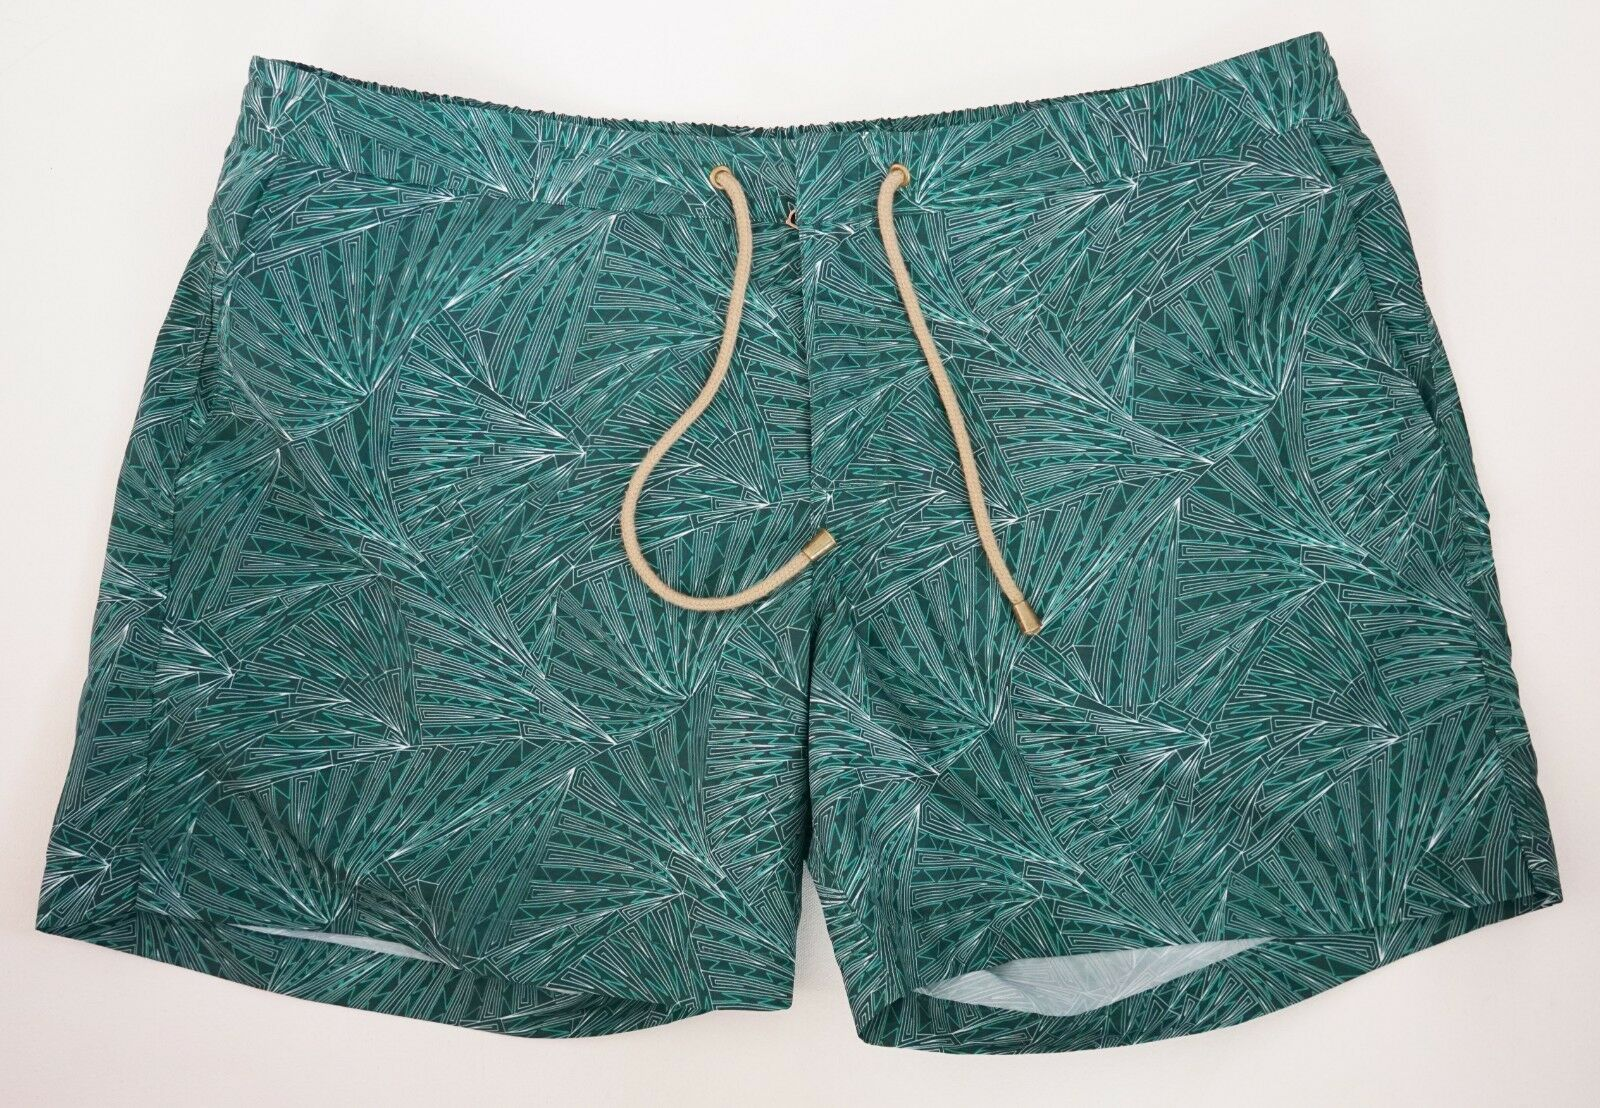 NWT Authentic THORSUN FANS-Print Swim Shorts Trunks Beachwear US-38